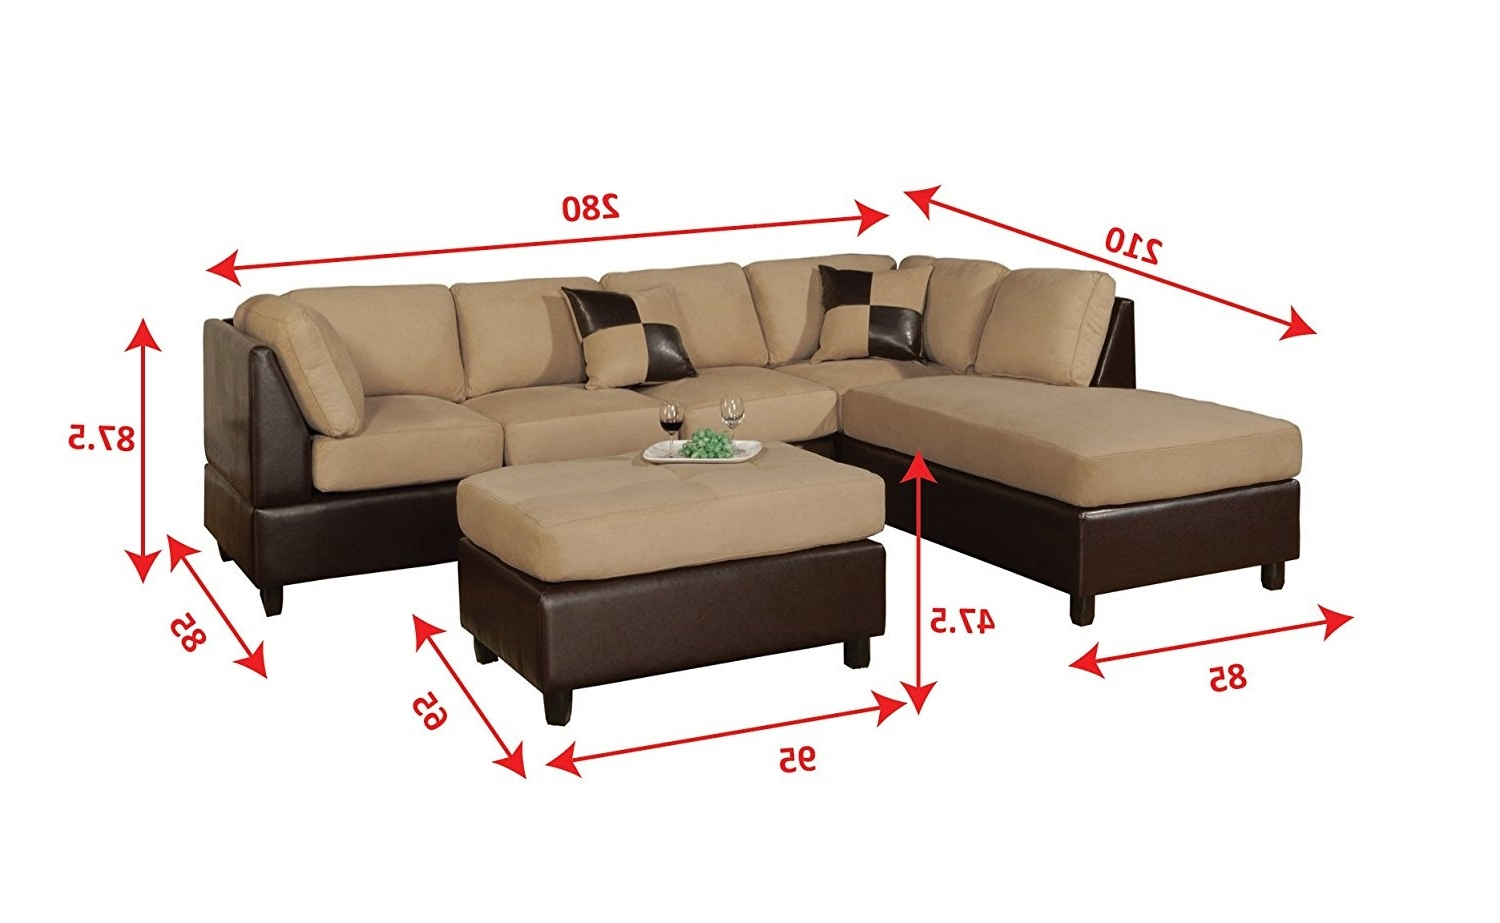 Amazon: Bobkona Hungtinton Microfiber/faux Leather 3 Piece With Regard To Widely Used Measurements Sectional Sofas (View 1 of 15)